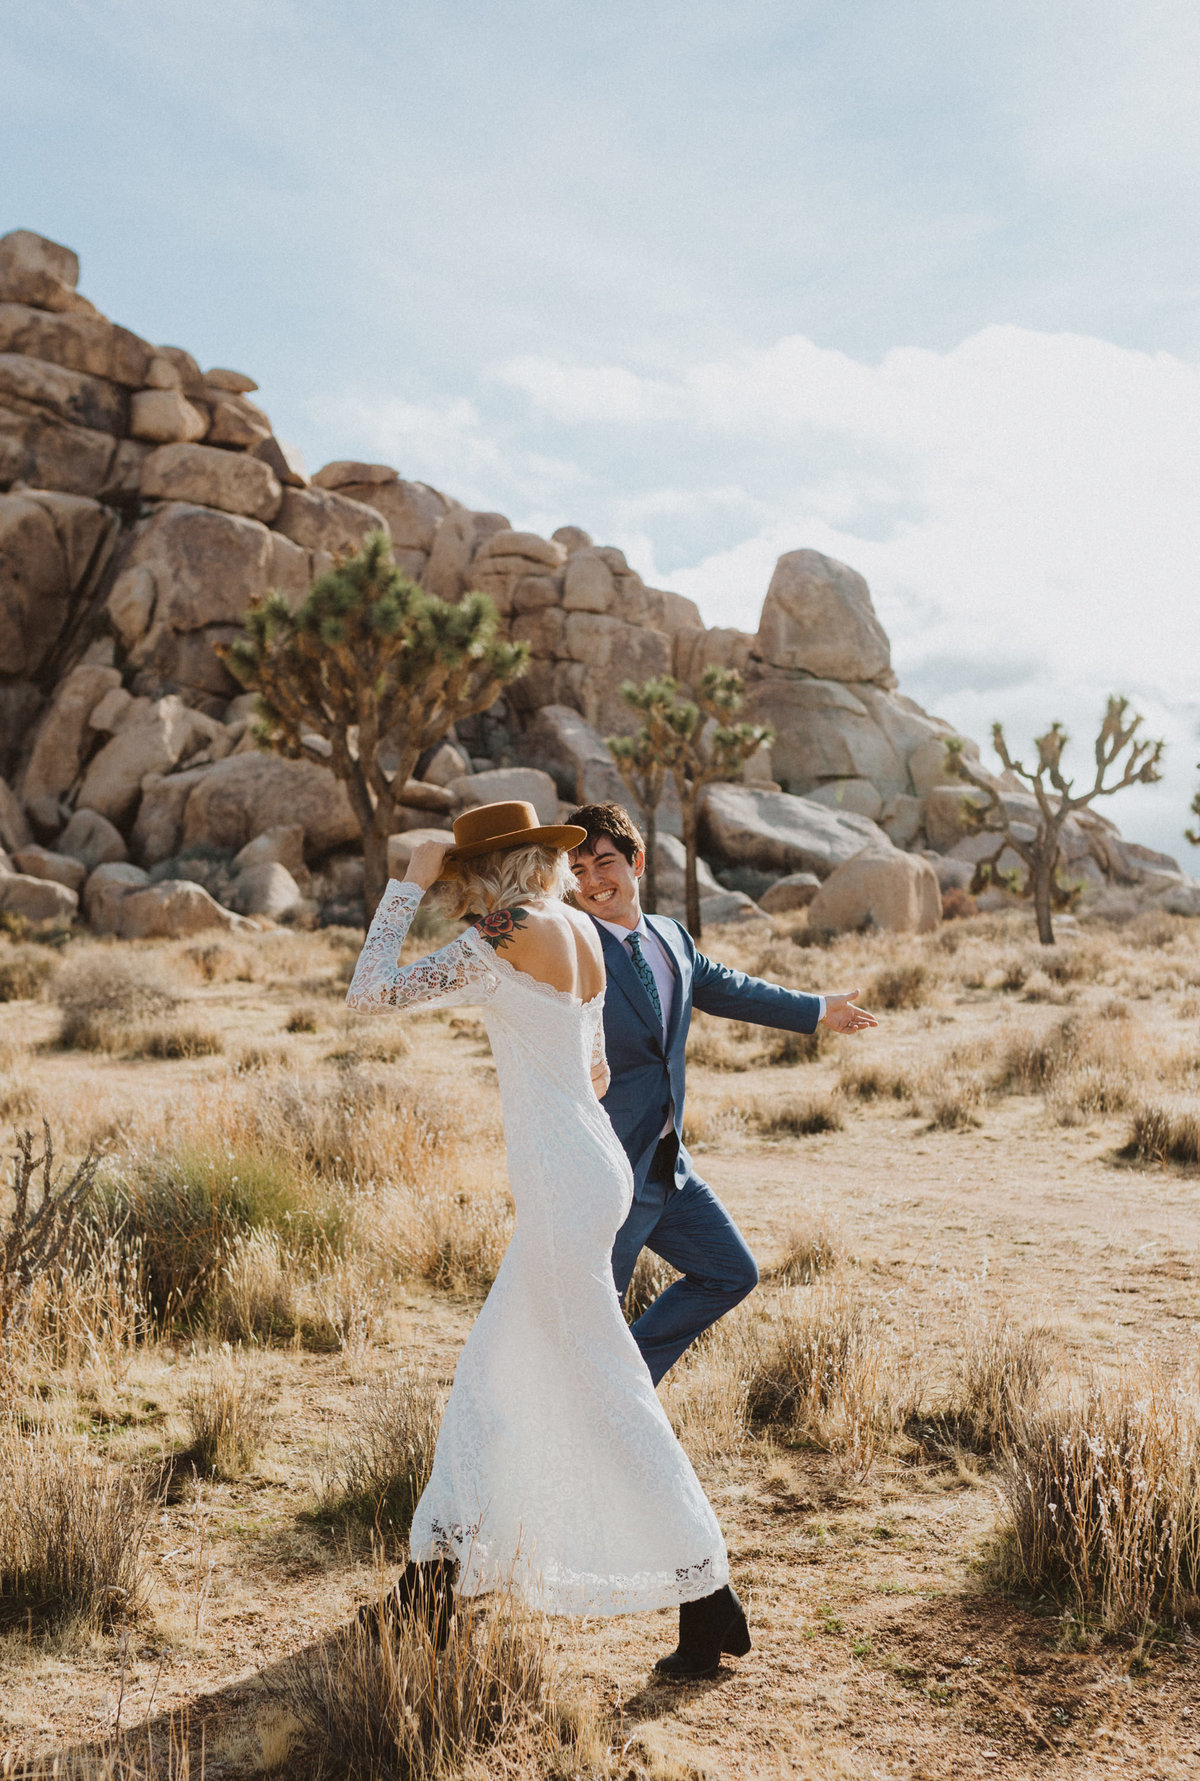 liv_hettinga_photography_joshua_tree_adventure_elopement-10